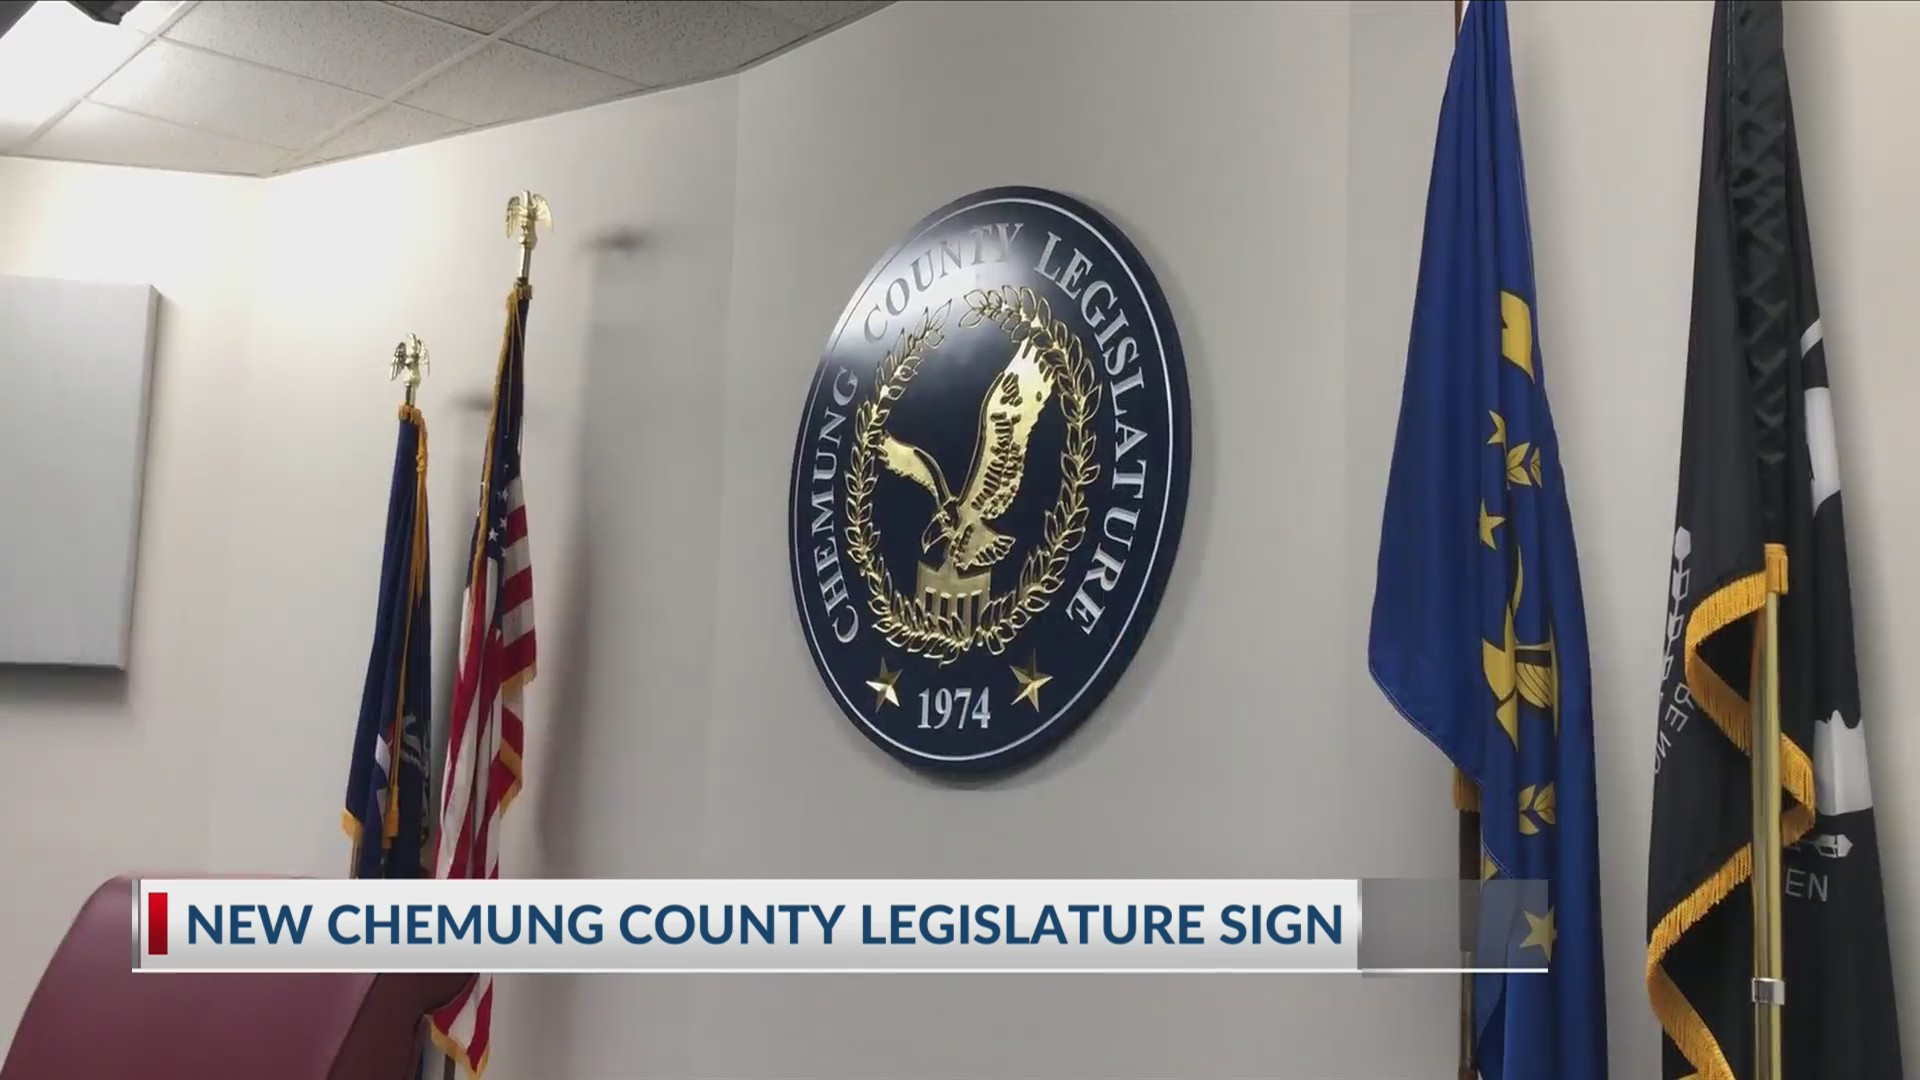 New Chemung County Legislature Sign